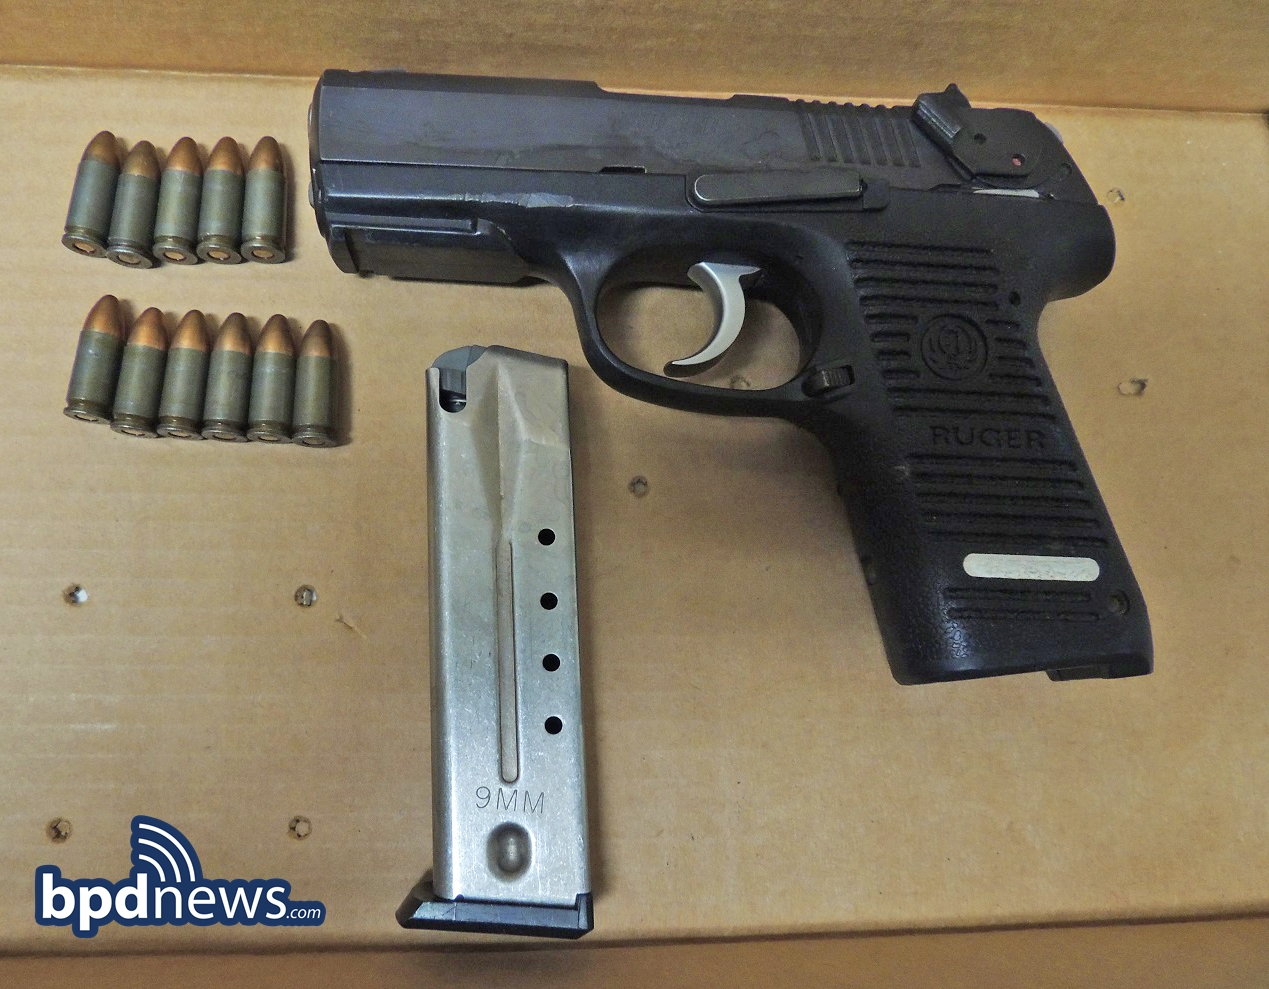 One Less Gun: Tip from Concerned Community Member Enables